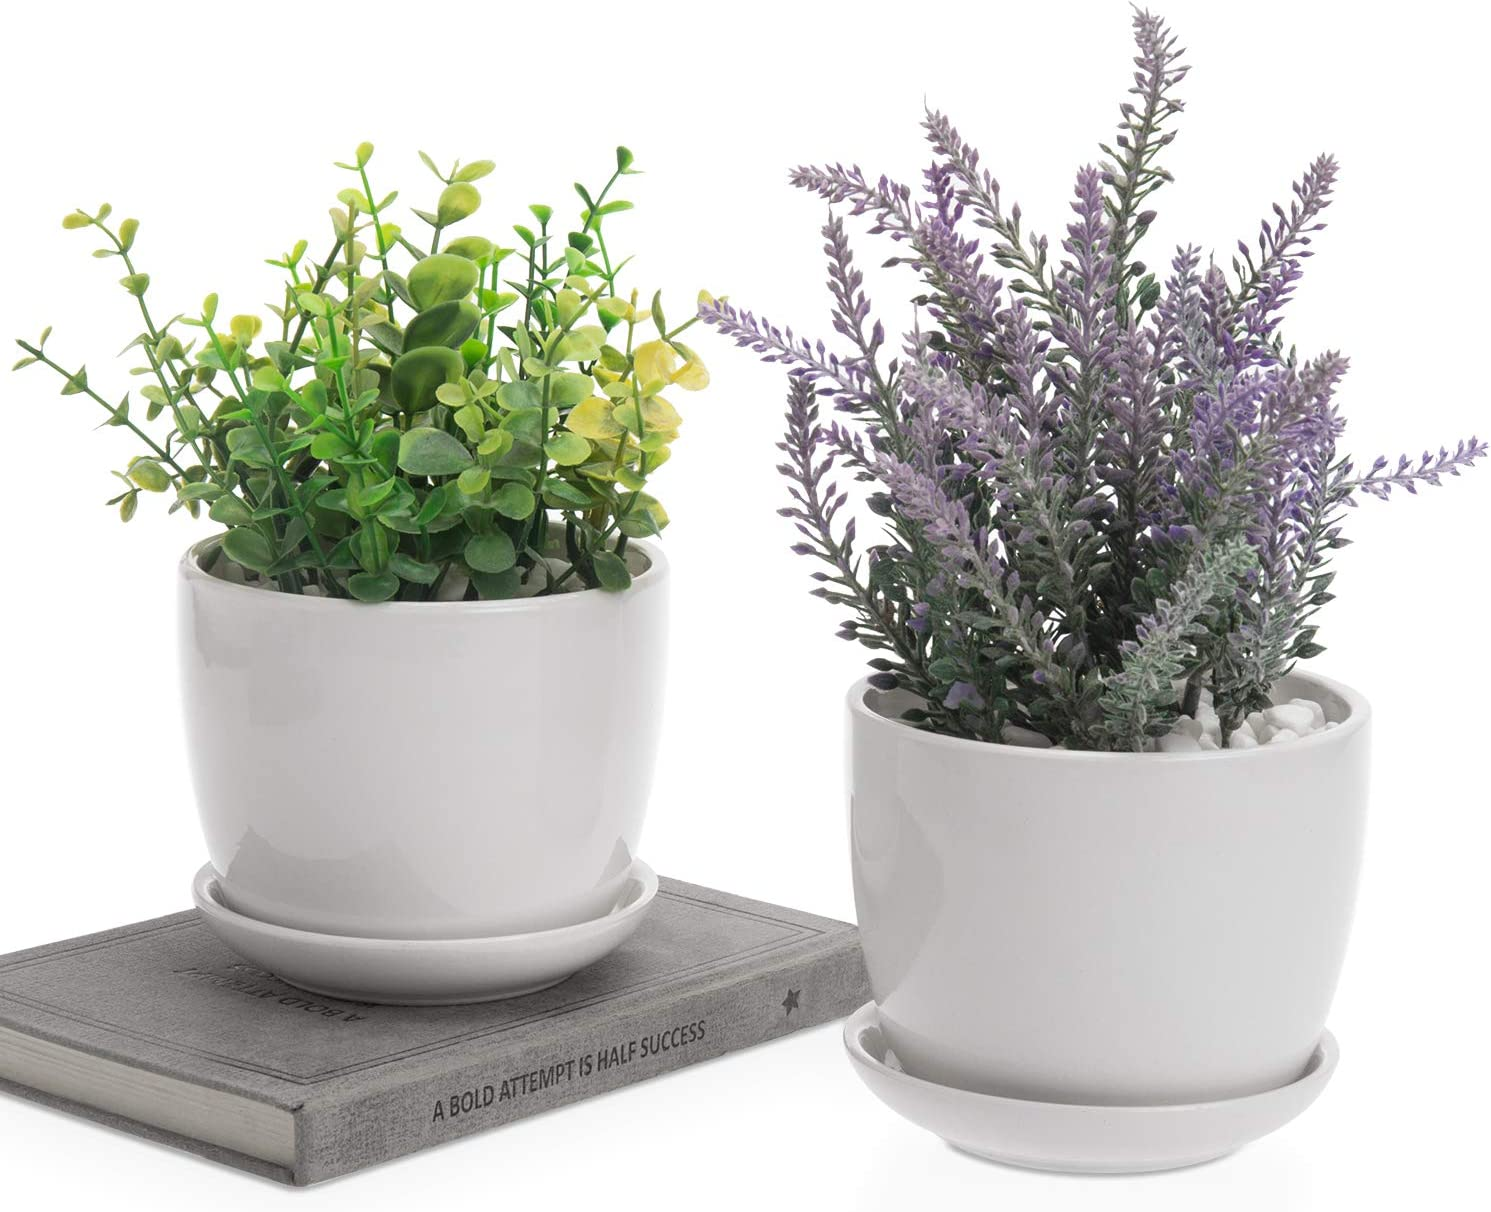 MyGift 4 Inch Ceramic Succulent Planter Flower Pots with Saucer, Set of 2, Off-White